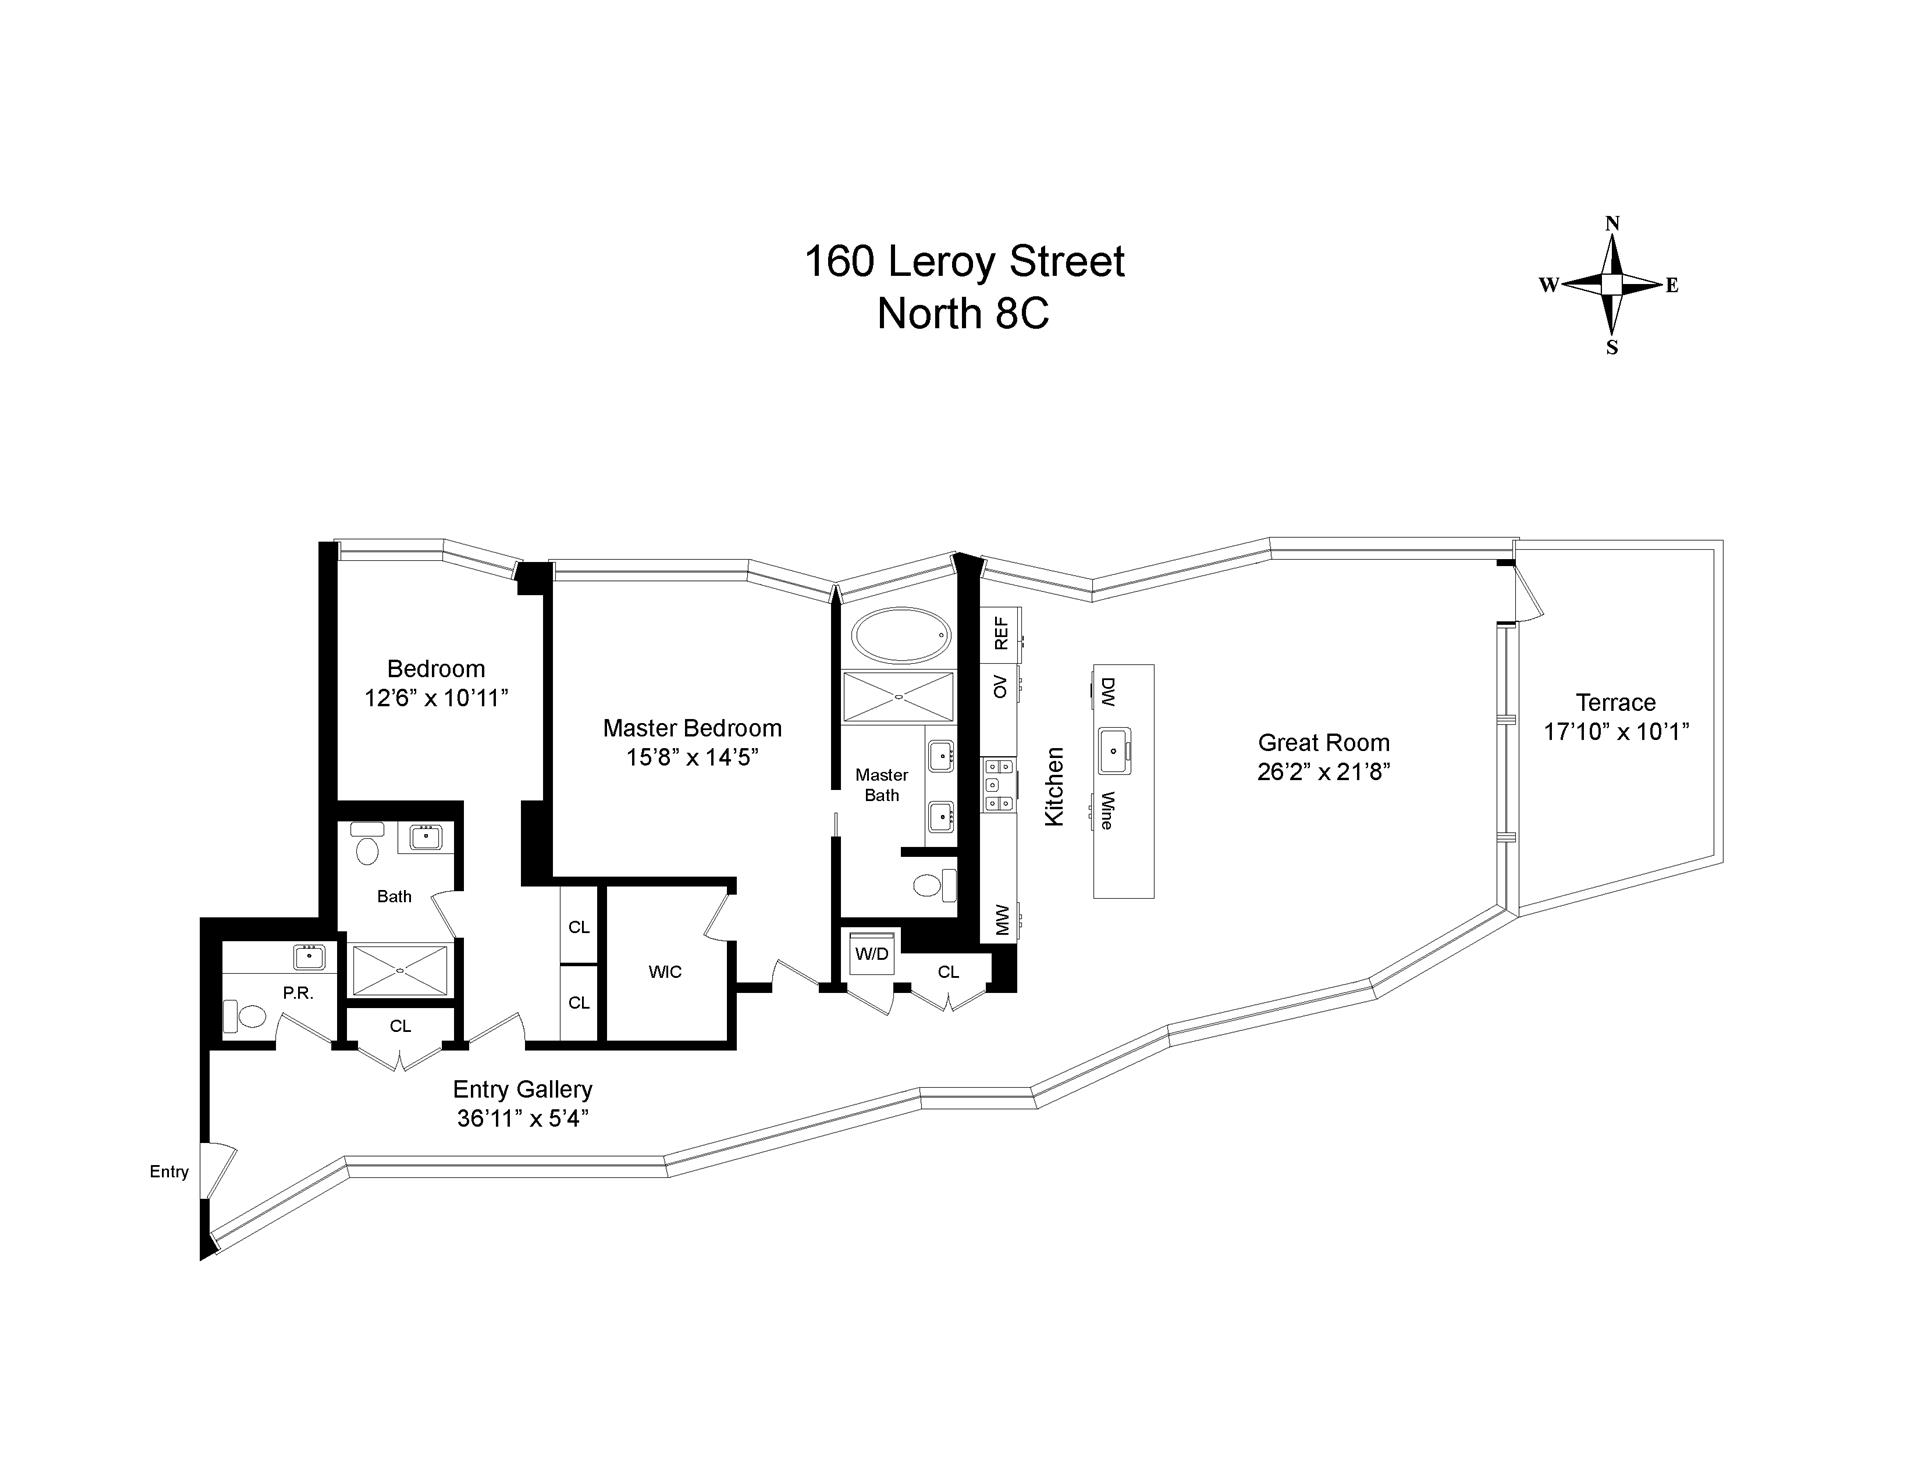 Floor plan of 160 Leroy St, NORTH8C - West Village - Meatpacking District, New York